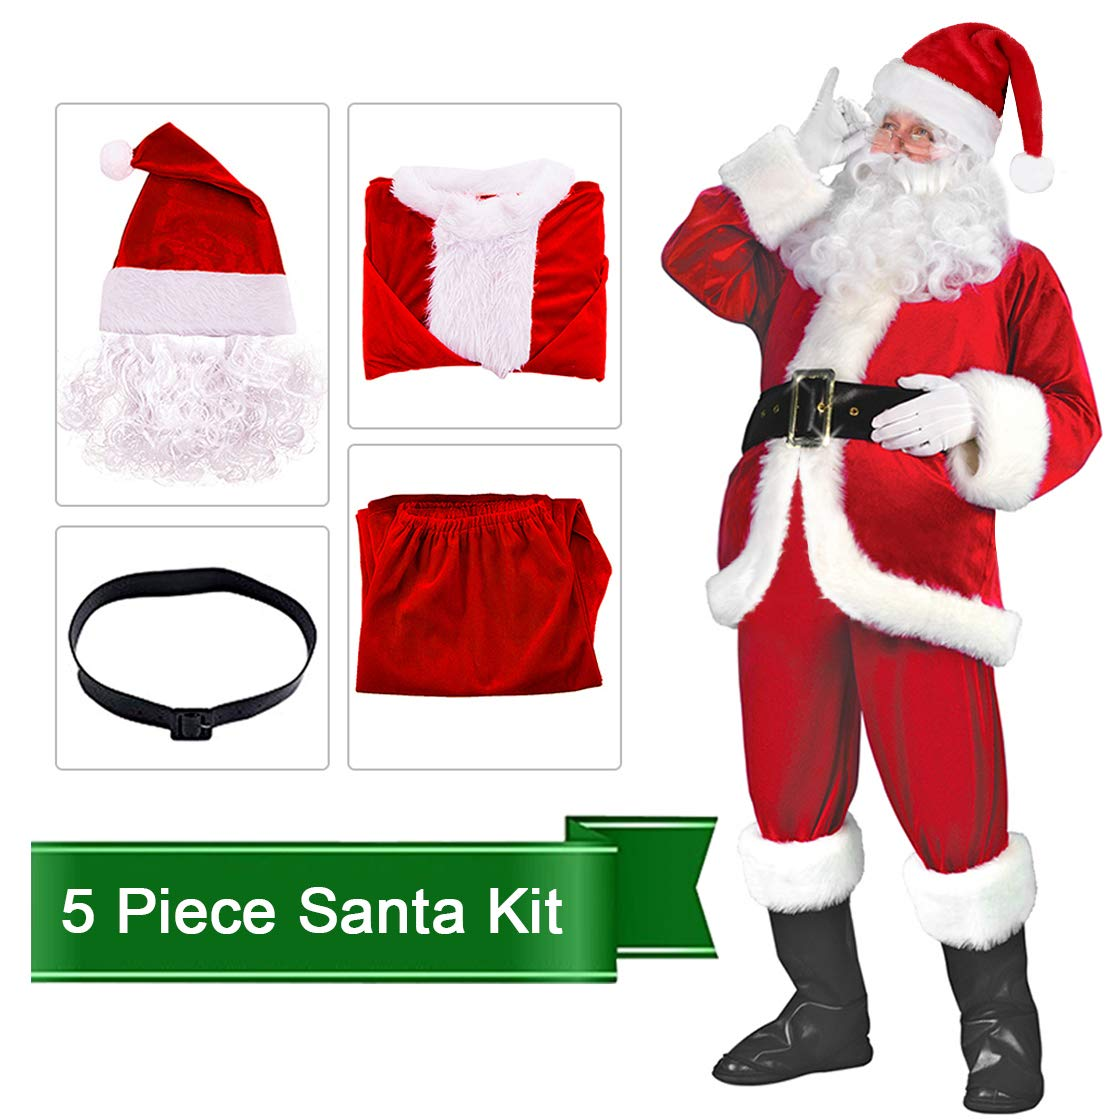 Santa Claus Costume Suit Deluxe Adult Men Christmas Party Cosplay Santa Outfit SDLRZ-RD-002P